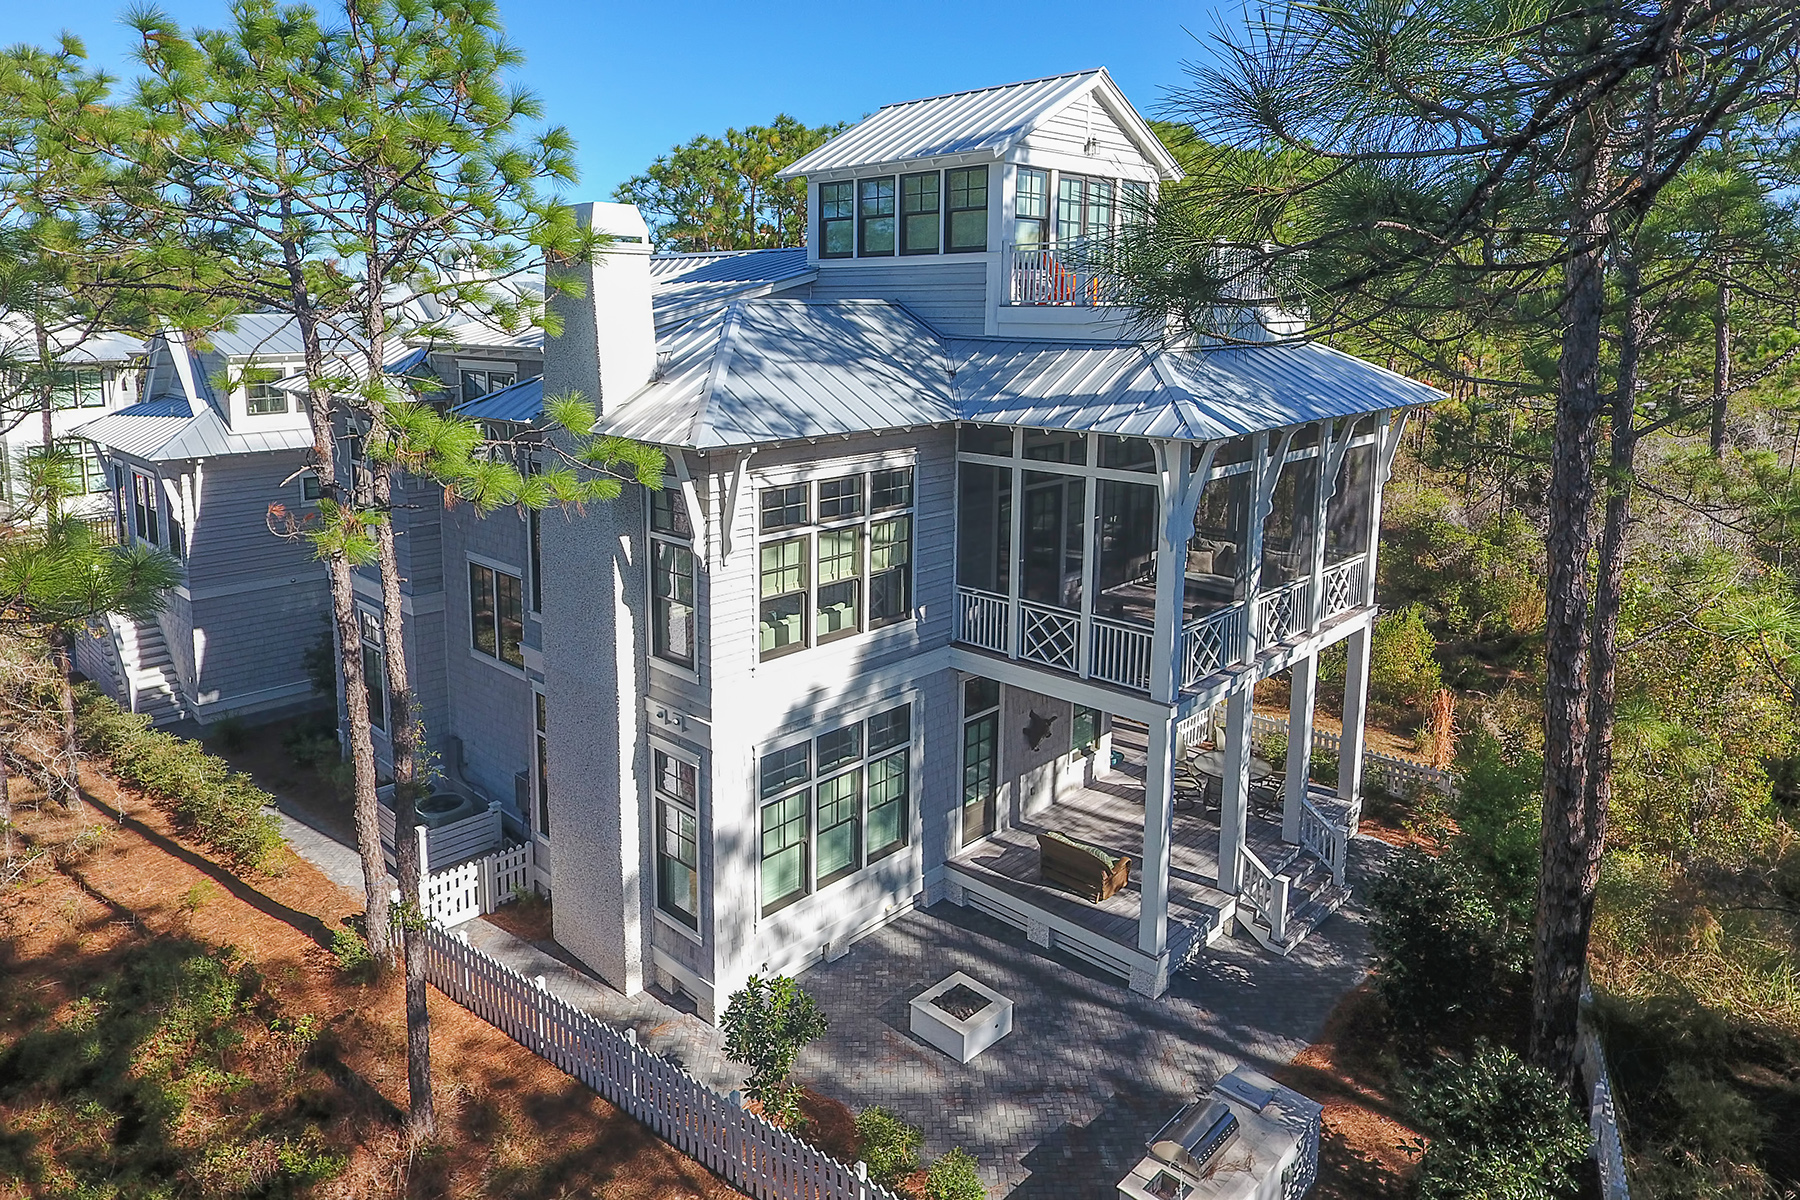 Single Family Home for Sale at ARCHITECTURALLY SIGNIFICANT WATERCOLOR LAKEFRONT RESIDENCE 45 Vermilion Way Santa Rosa Beach, Florida, 32459 United States